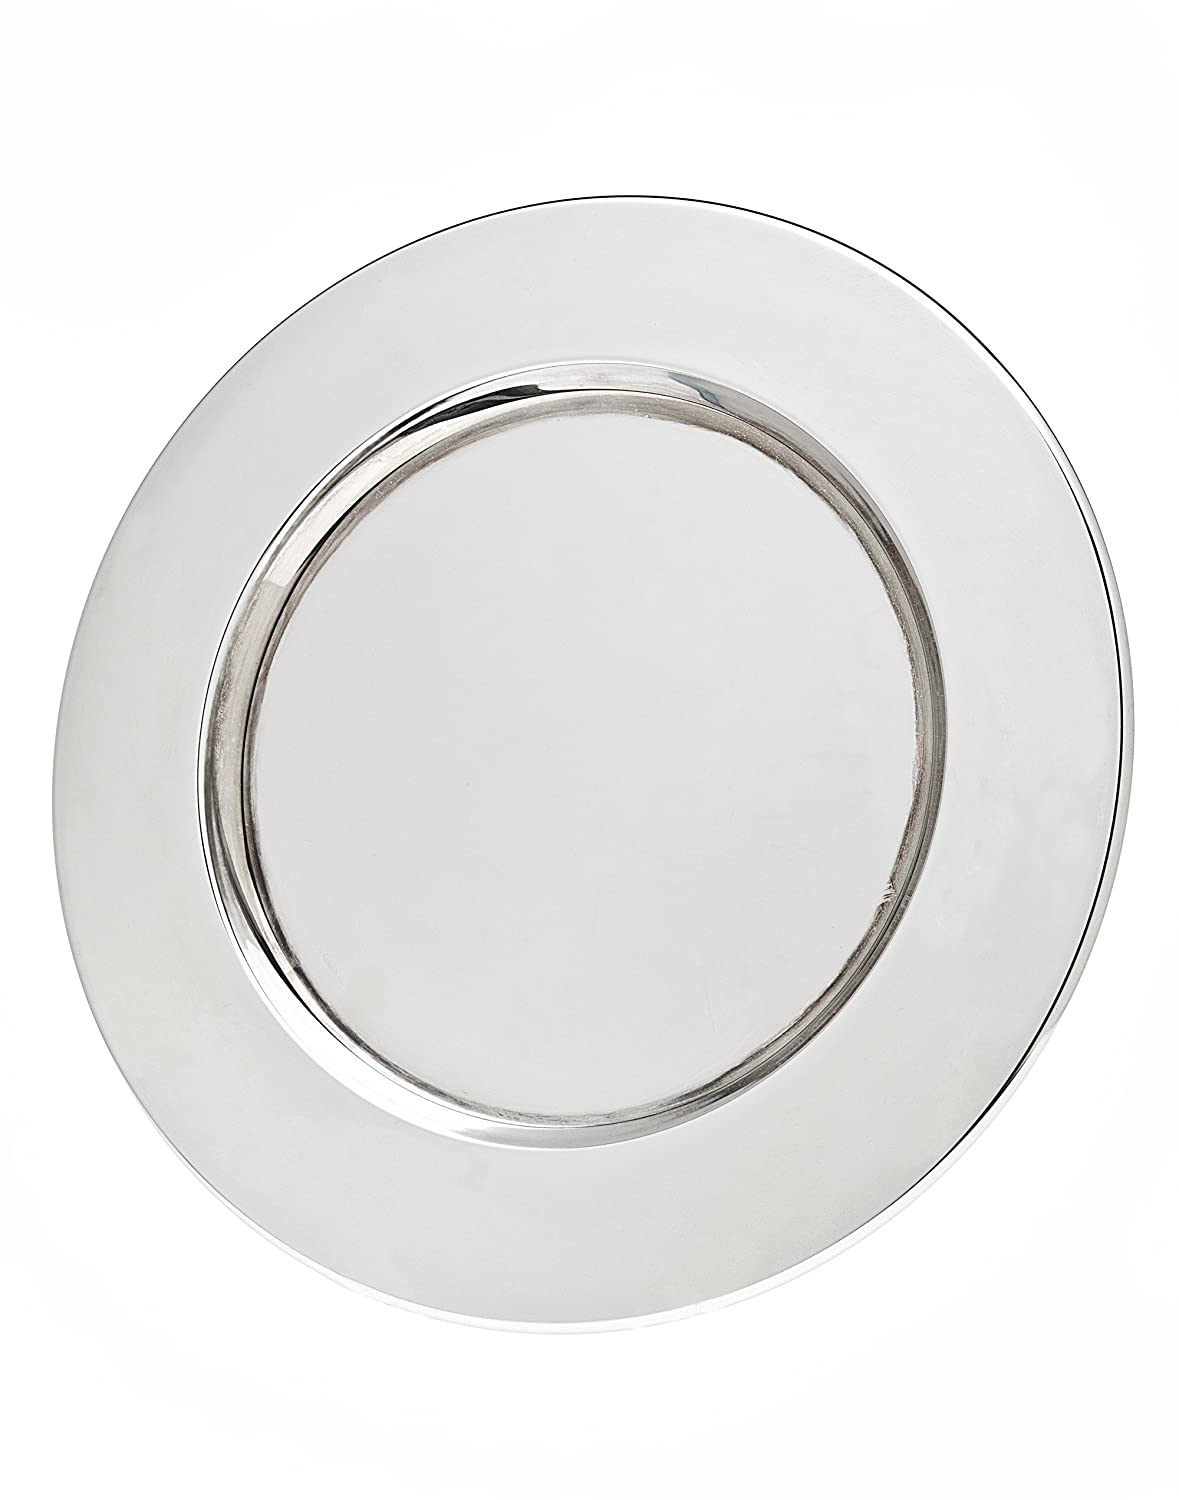 Christmas Tablescape Décor - Godinger silver-plated charger plates - Set of 4